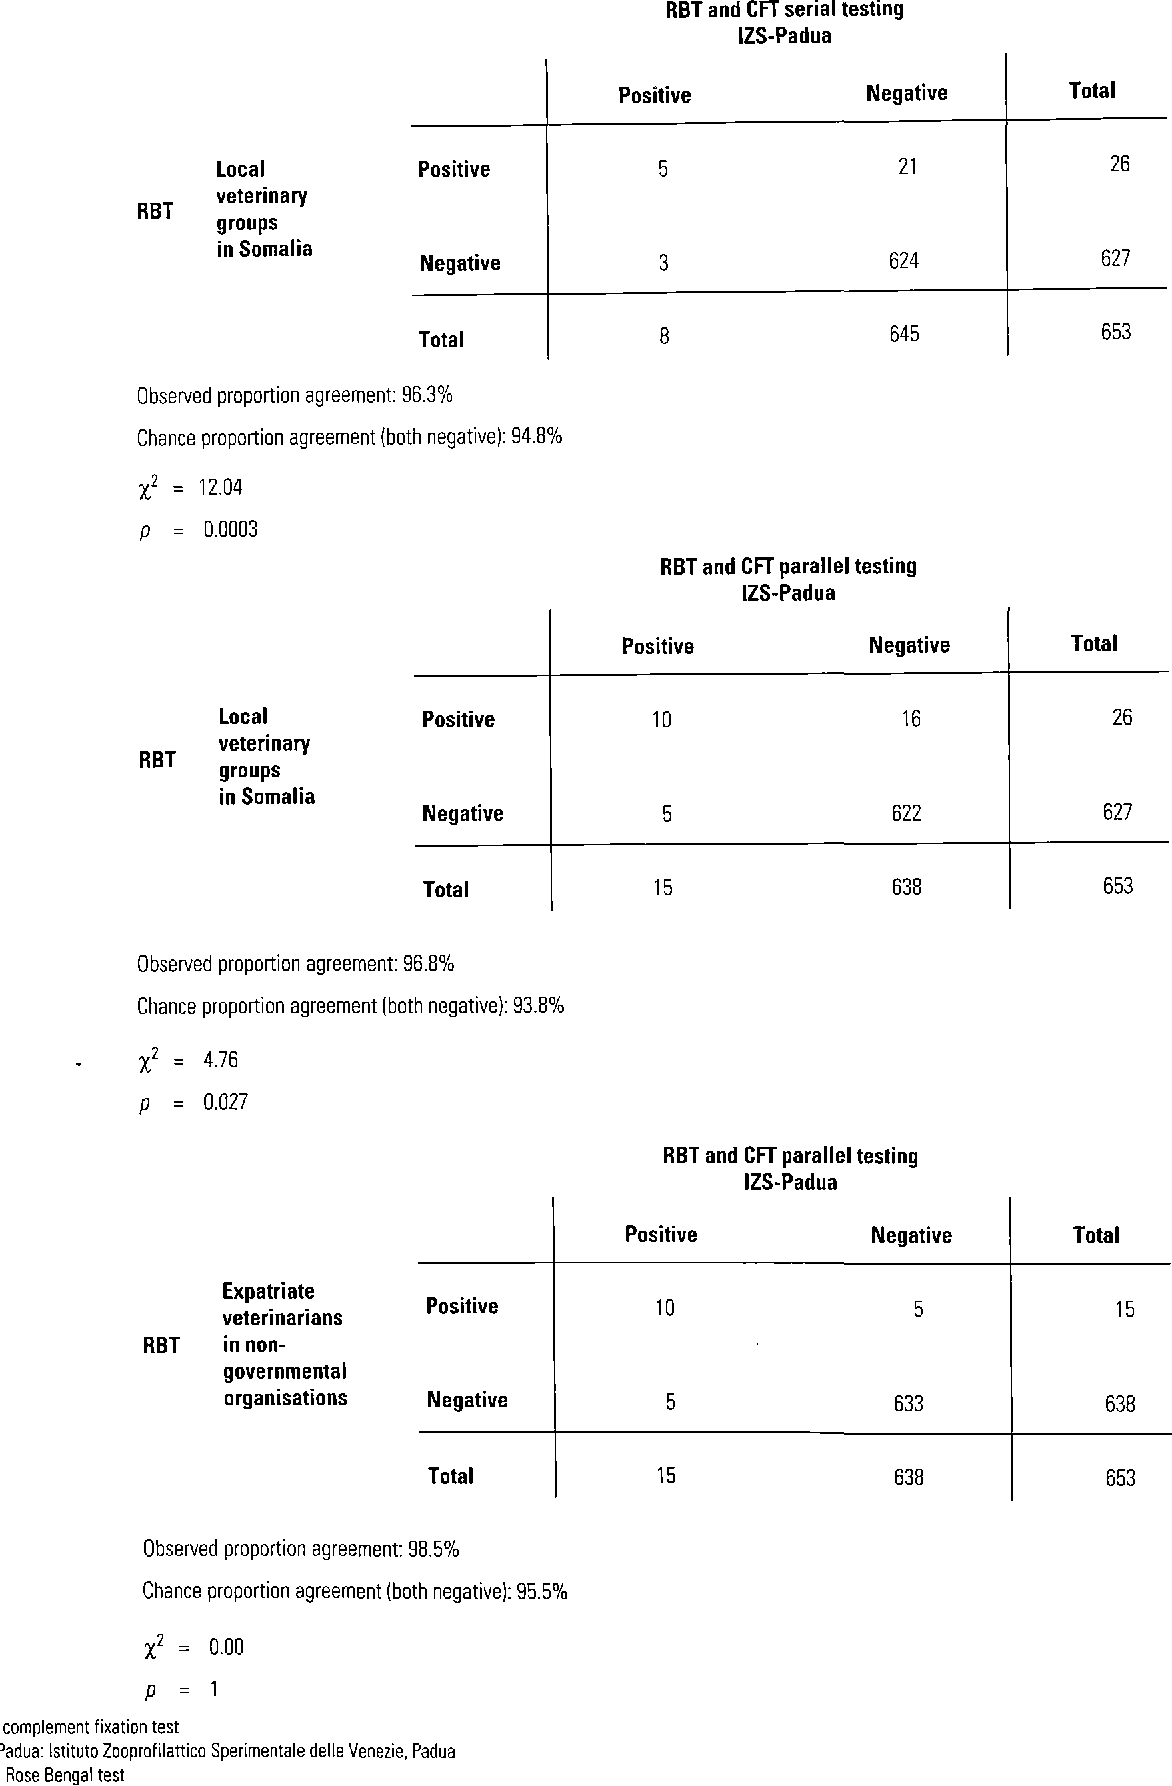 Fig. 2 Comparison of the results of Rose Bengal and complement fixation testing among the three laboratories (groups A, B and C)